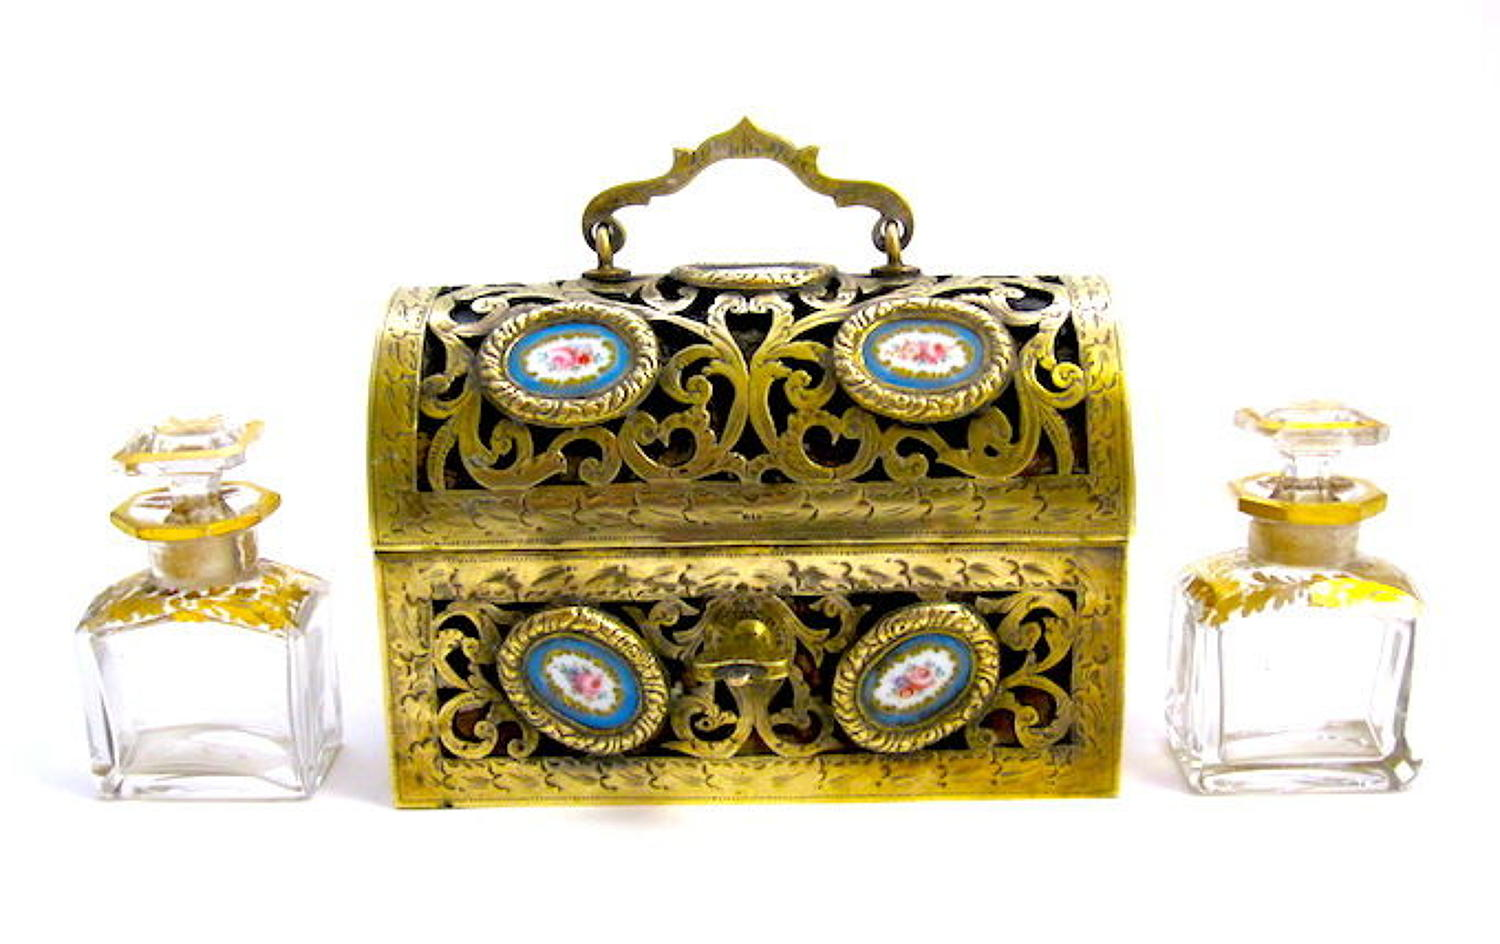 Antique French 'Sevres' Dore Bronze and Porcelain Perfume Casket